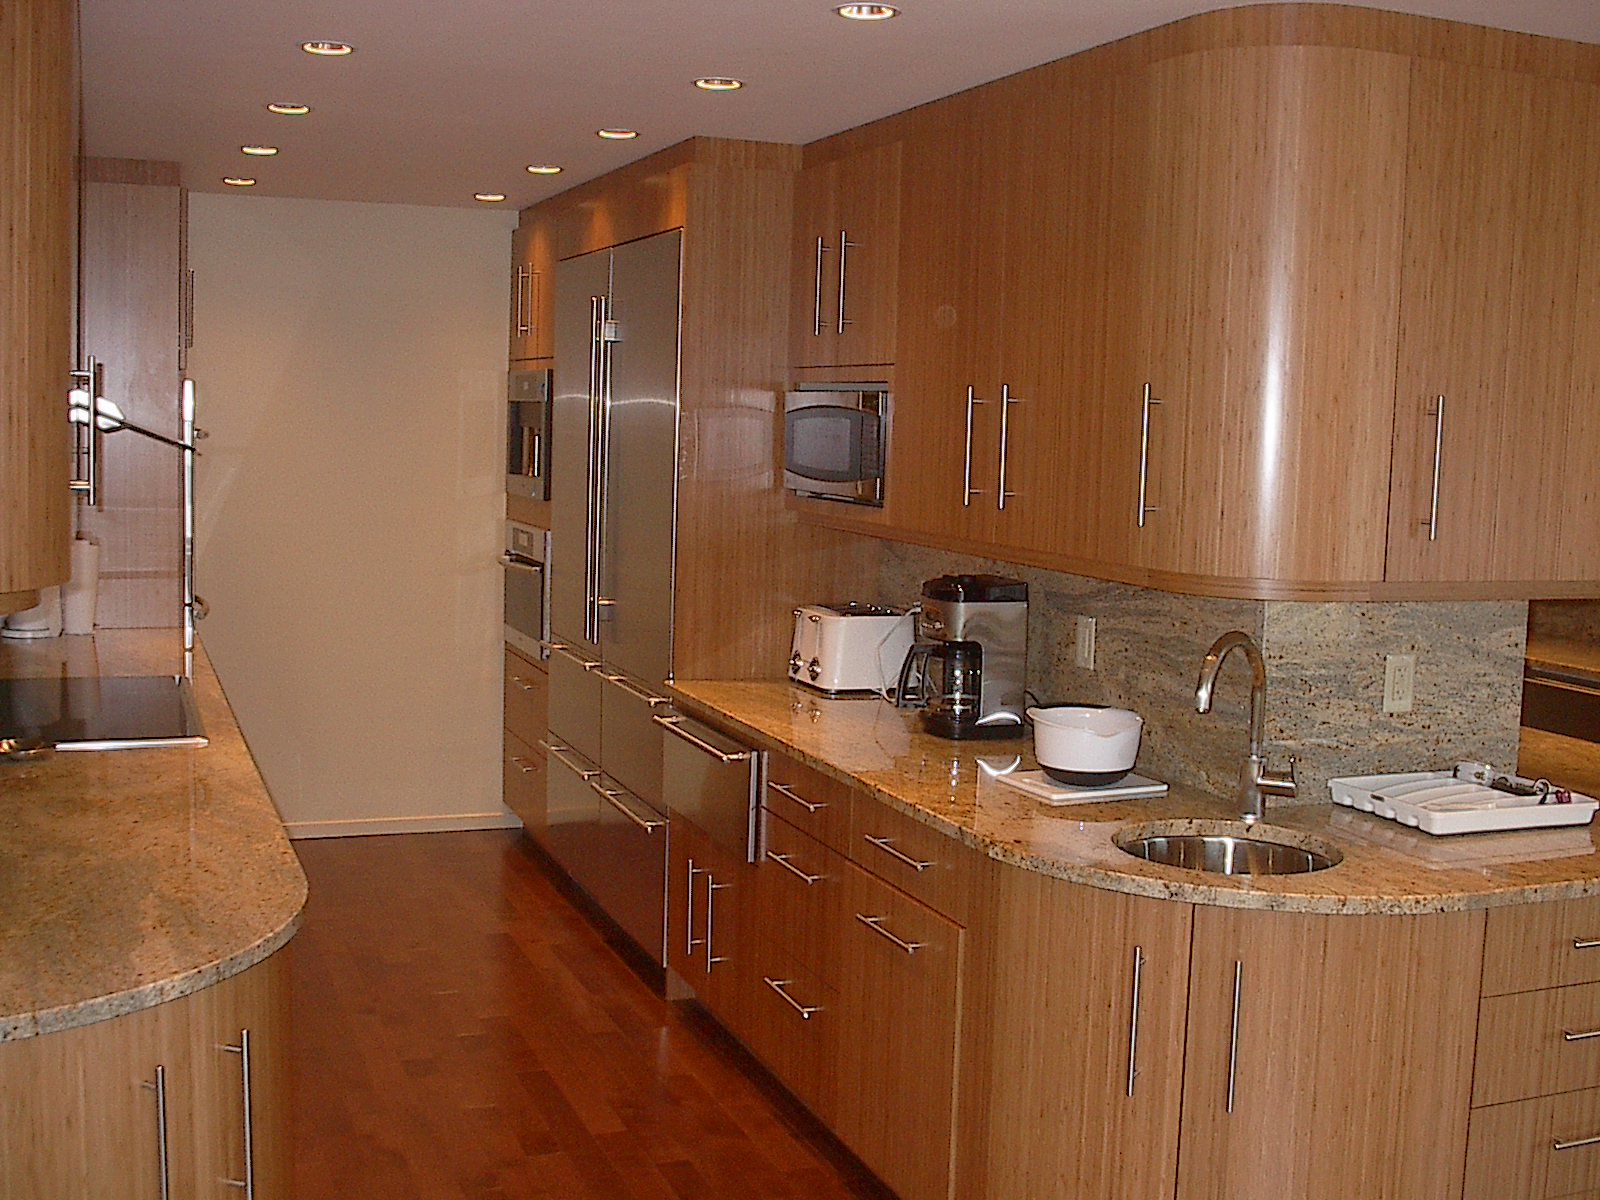 Kitchen bath remodeling kitchen bath specialist 412 for Kitchen remodeling pittsburgh pa